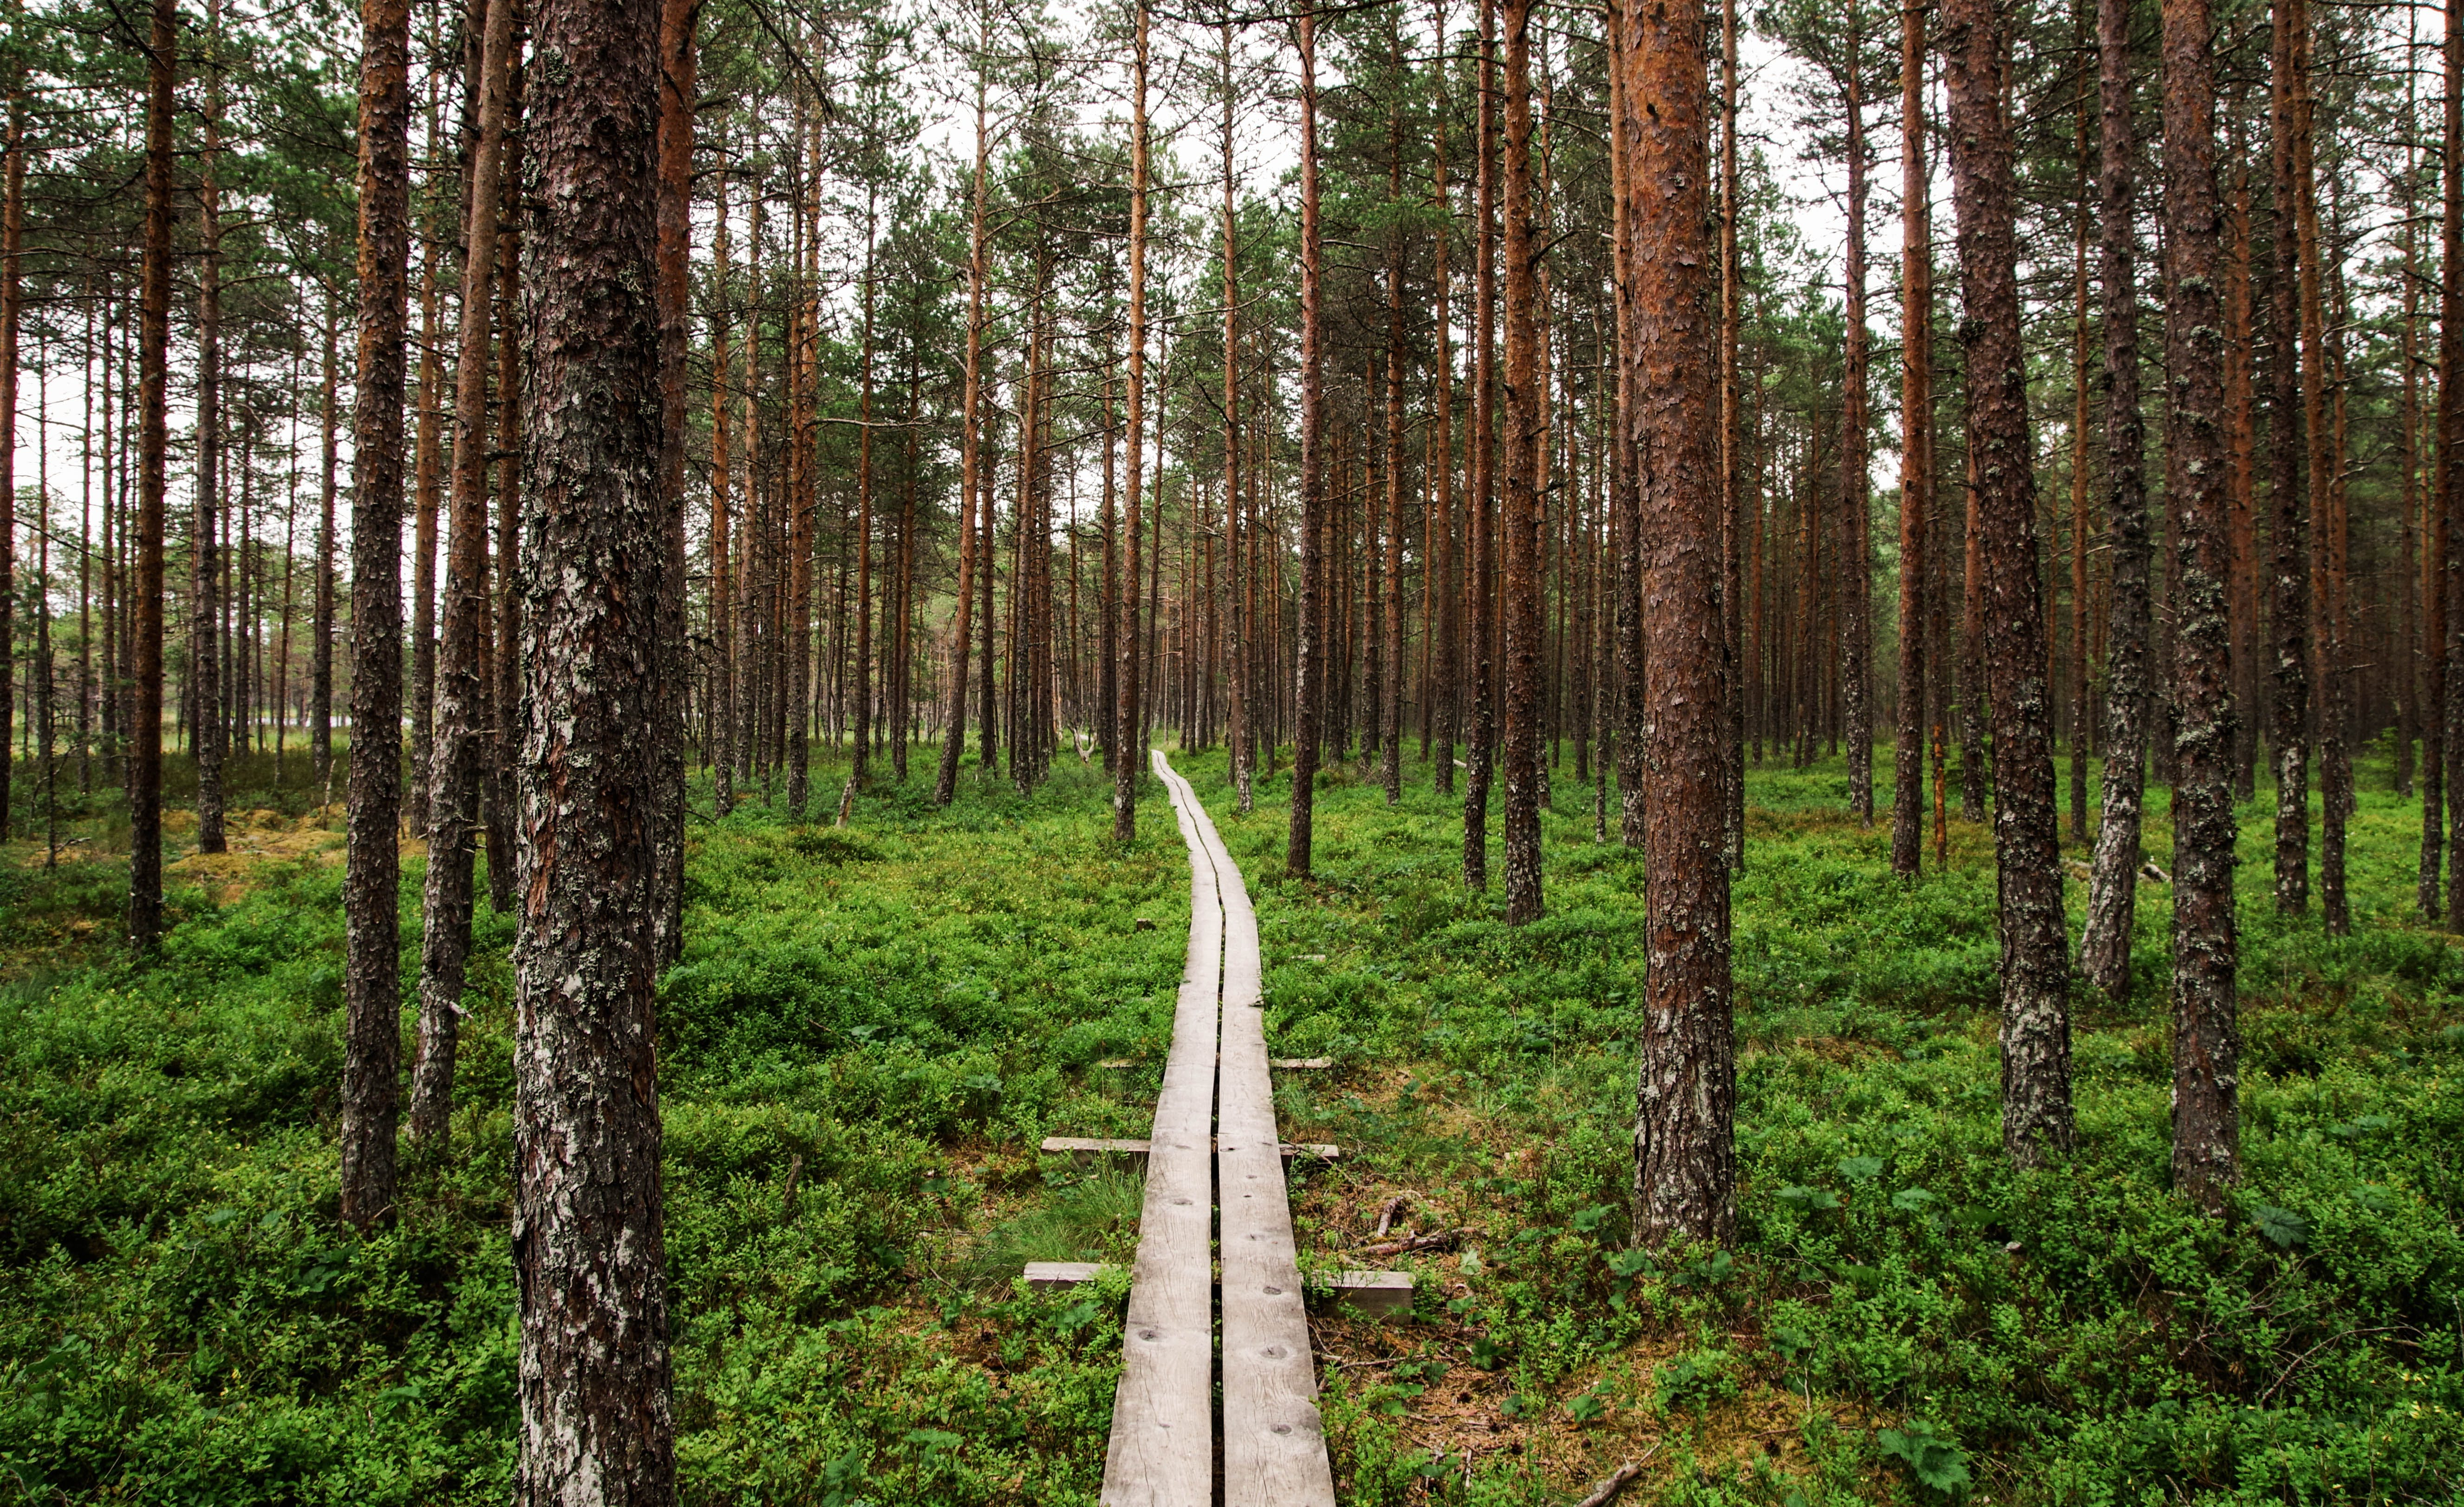 View of Wooden Pathway Inside Forest